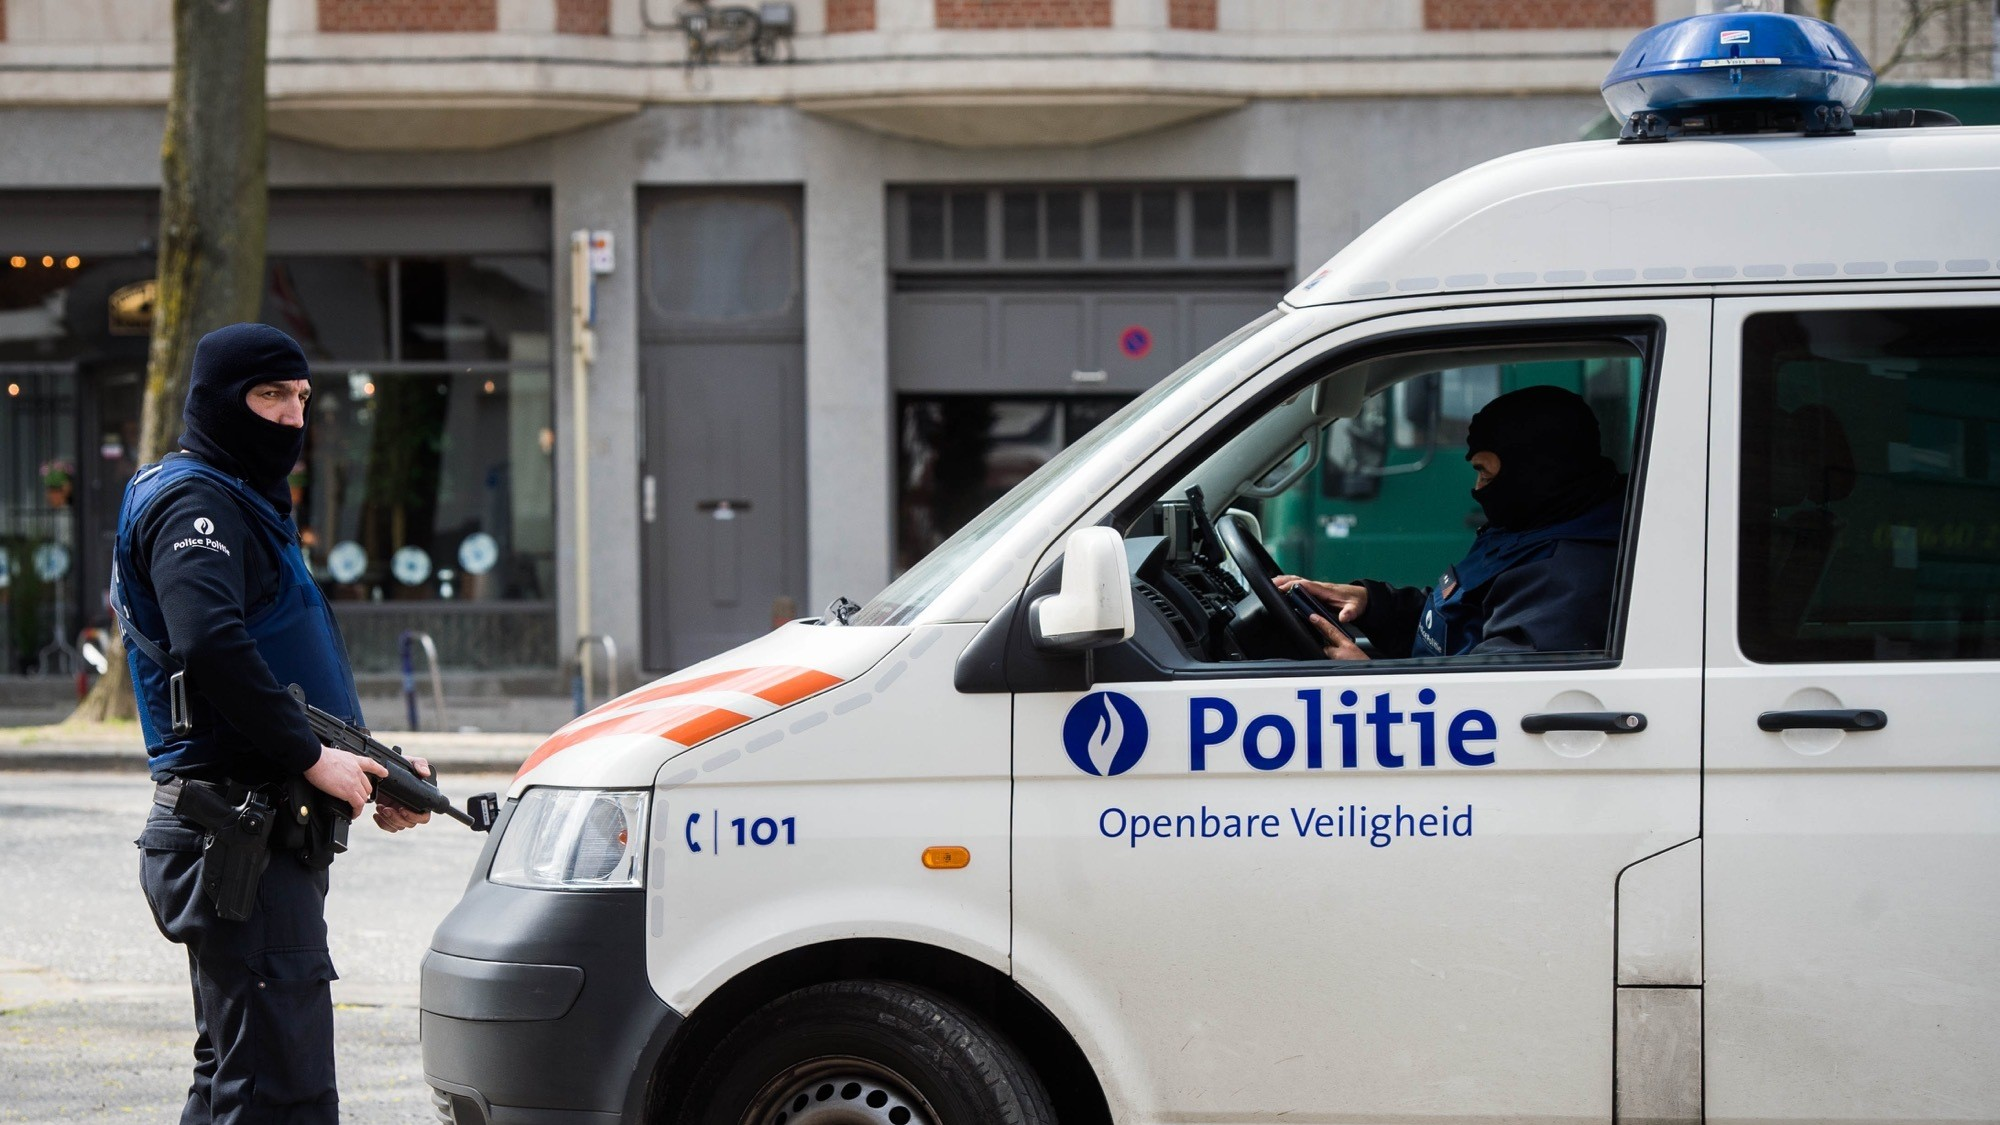 Police Say They Arrested Four People Plotting New Terror Attacks in Belgium